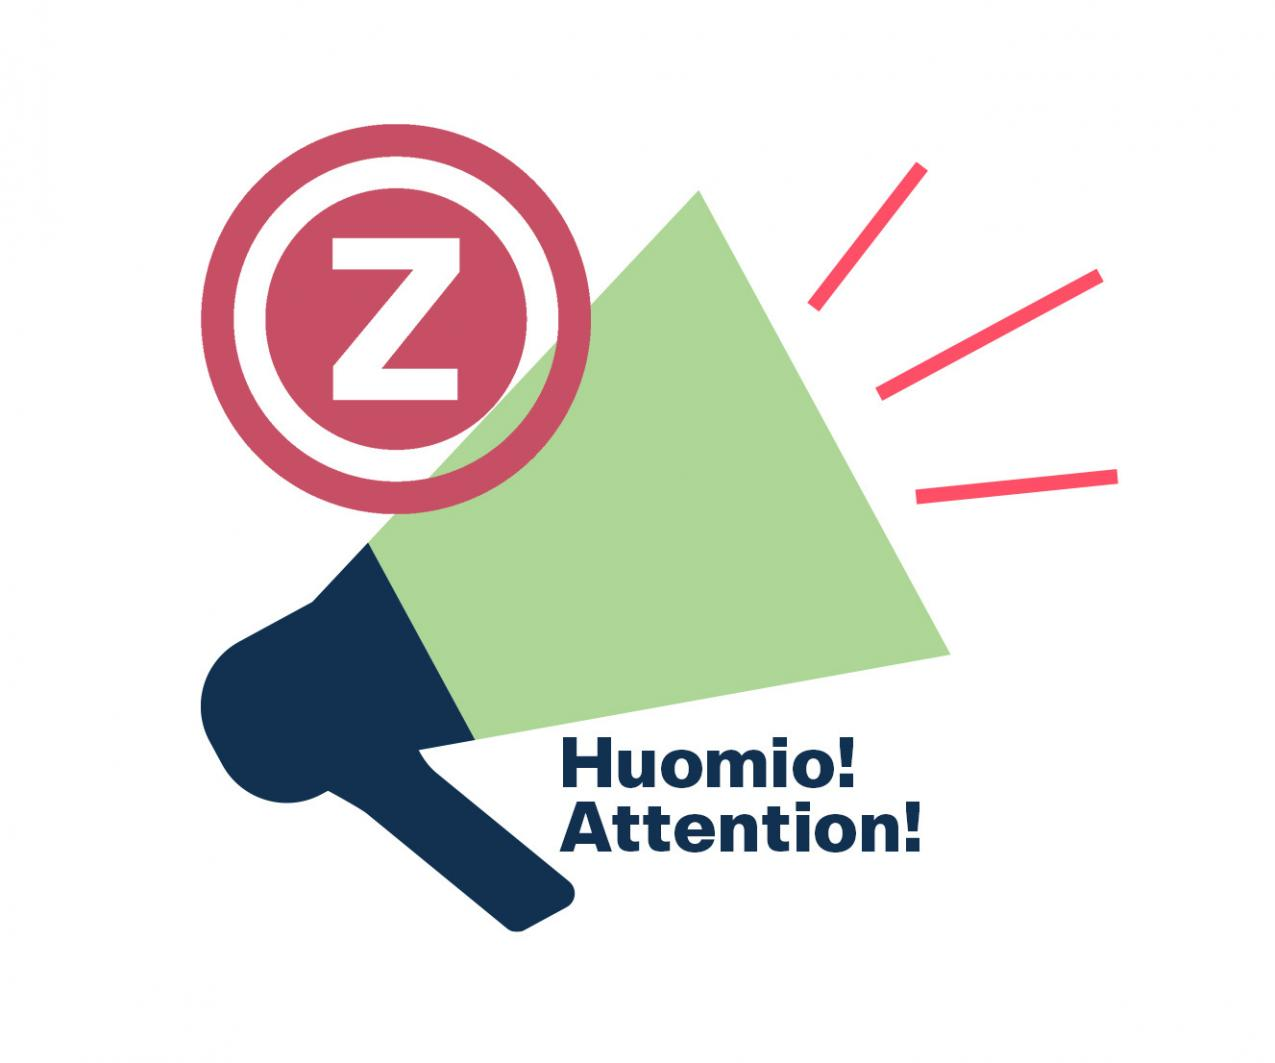 Huomio attention!